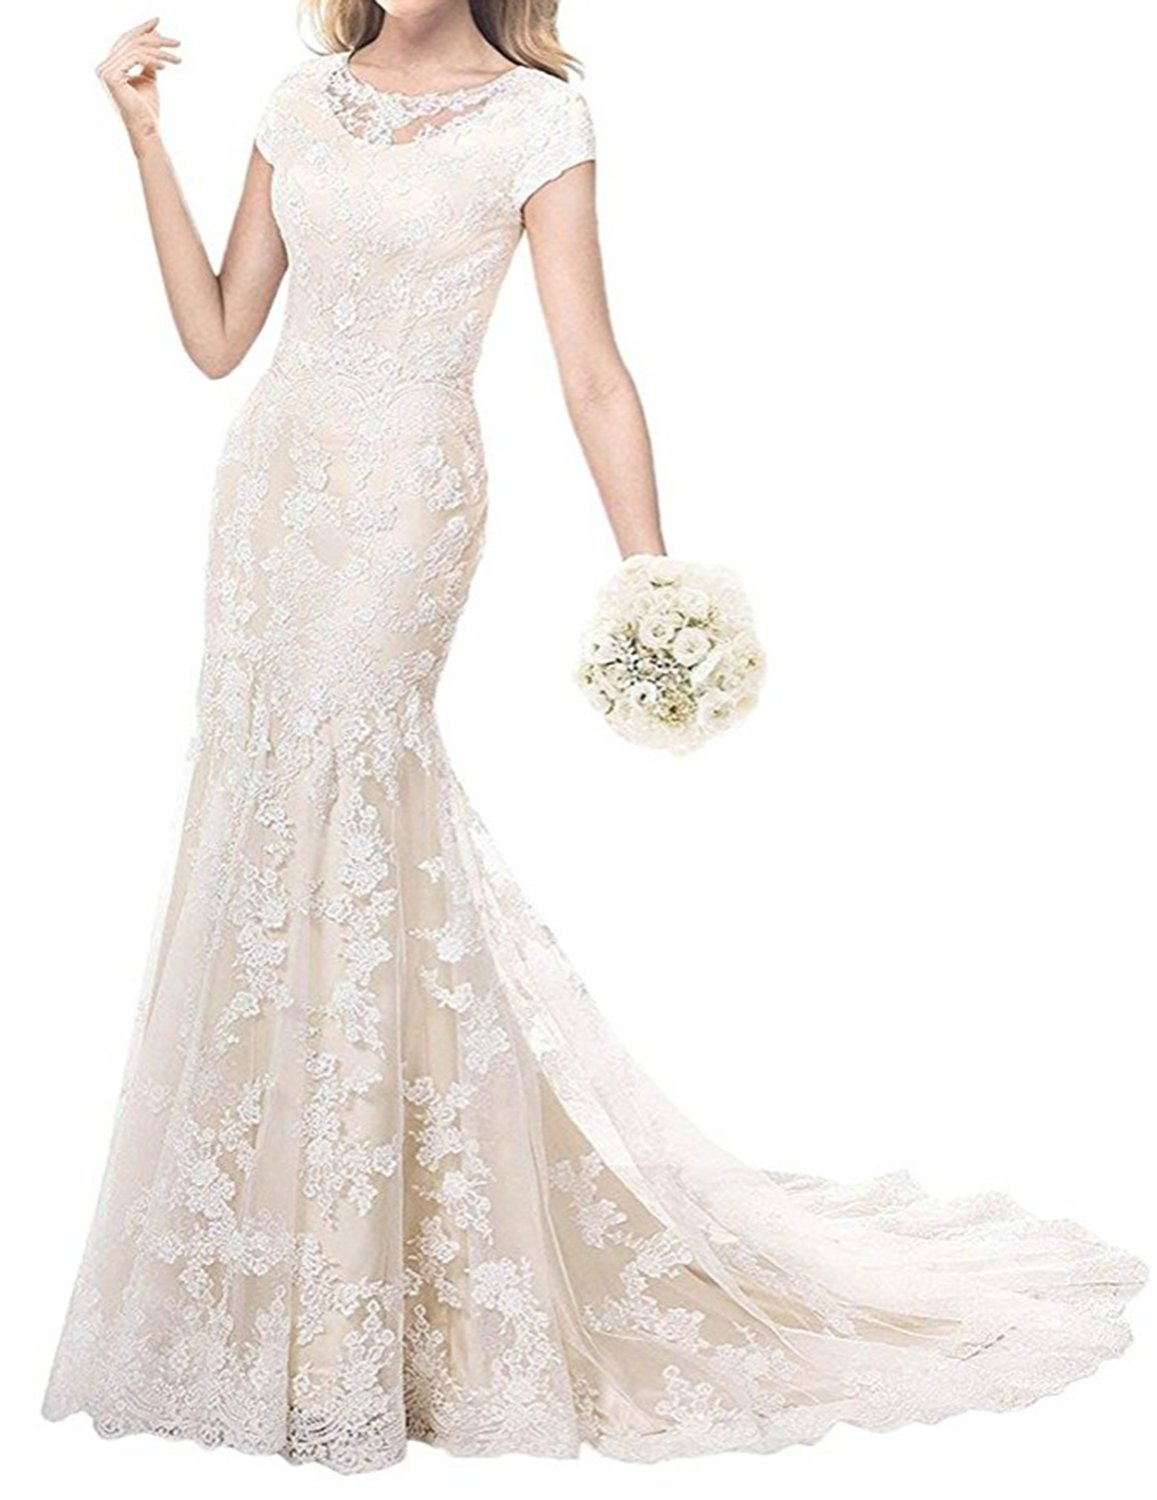 Ruiyuhong 2017 Modest Lace Wedding Dress with Sleeve Appliqued Bride Gown RHS51 Light Champagne 18W